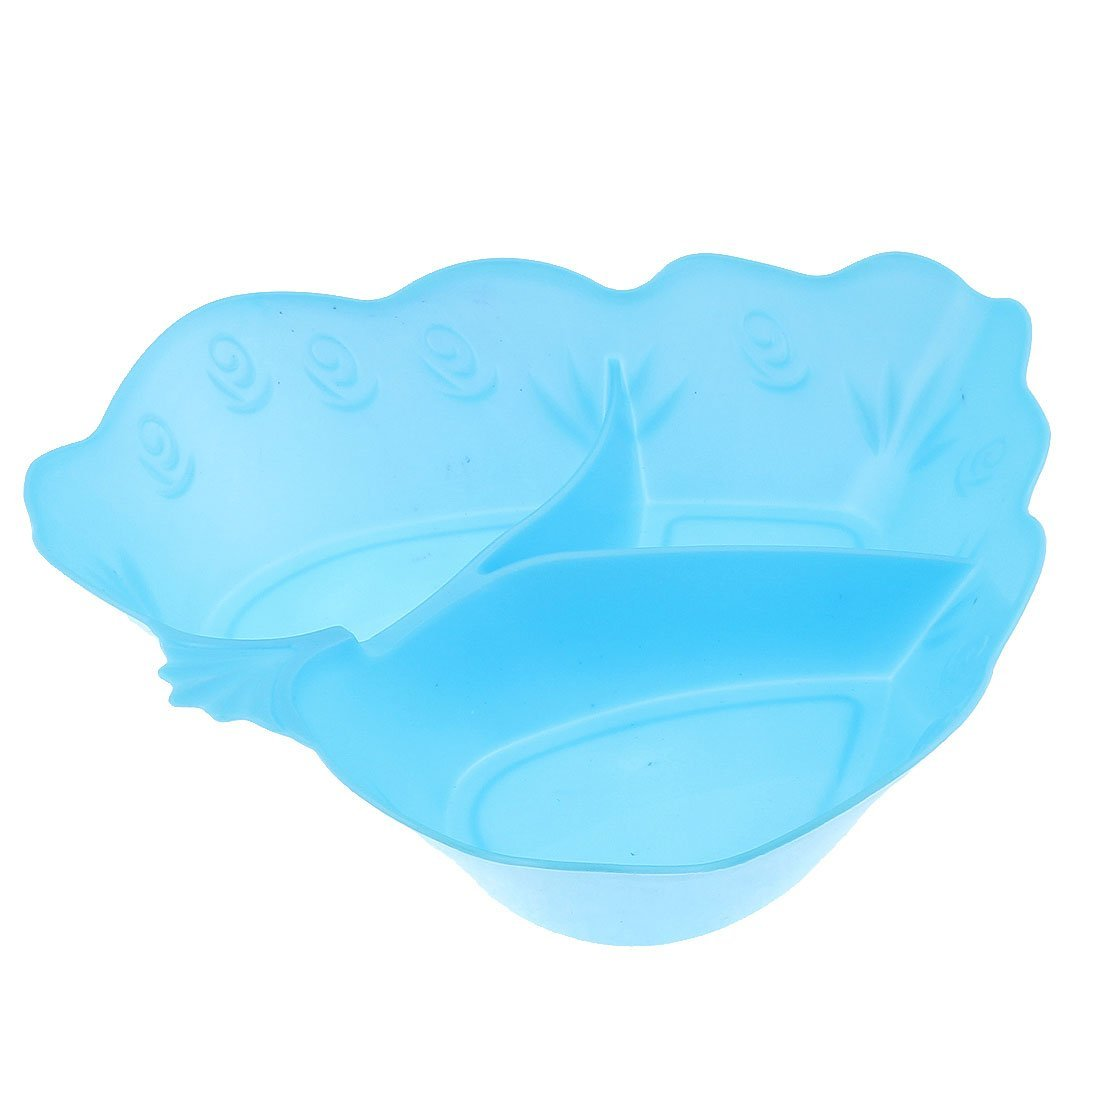 Amazon.com: DealMux Plastic coração Design Fruto vegetal chapa bandeja 2 Pcs Rosa Coral Blue: Kitchen & Dining